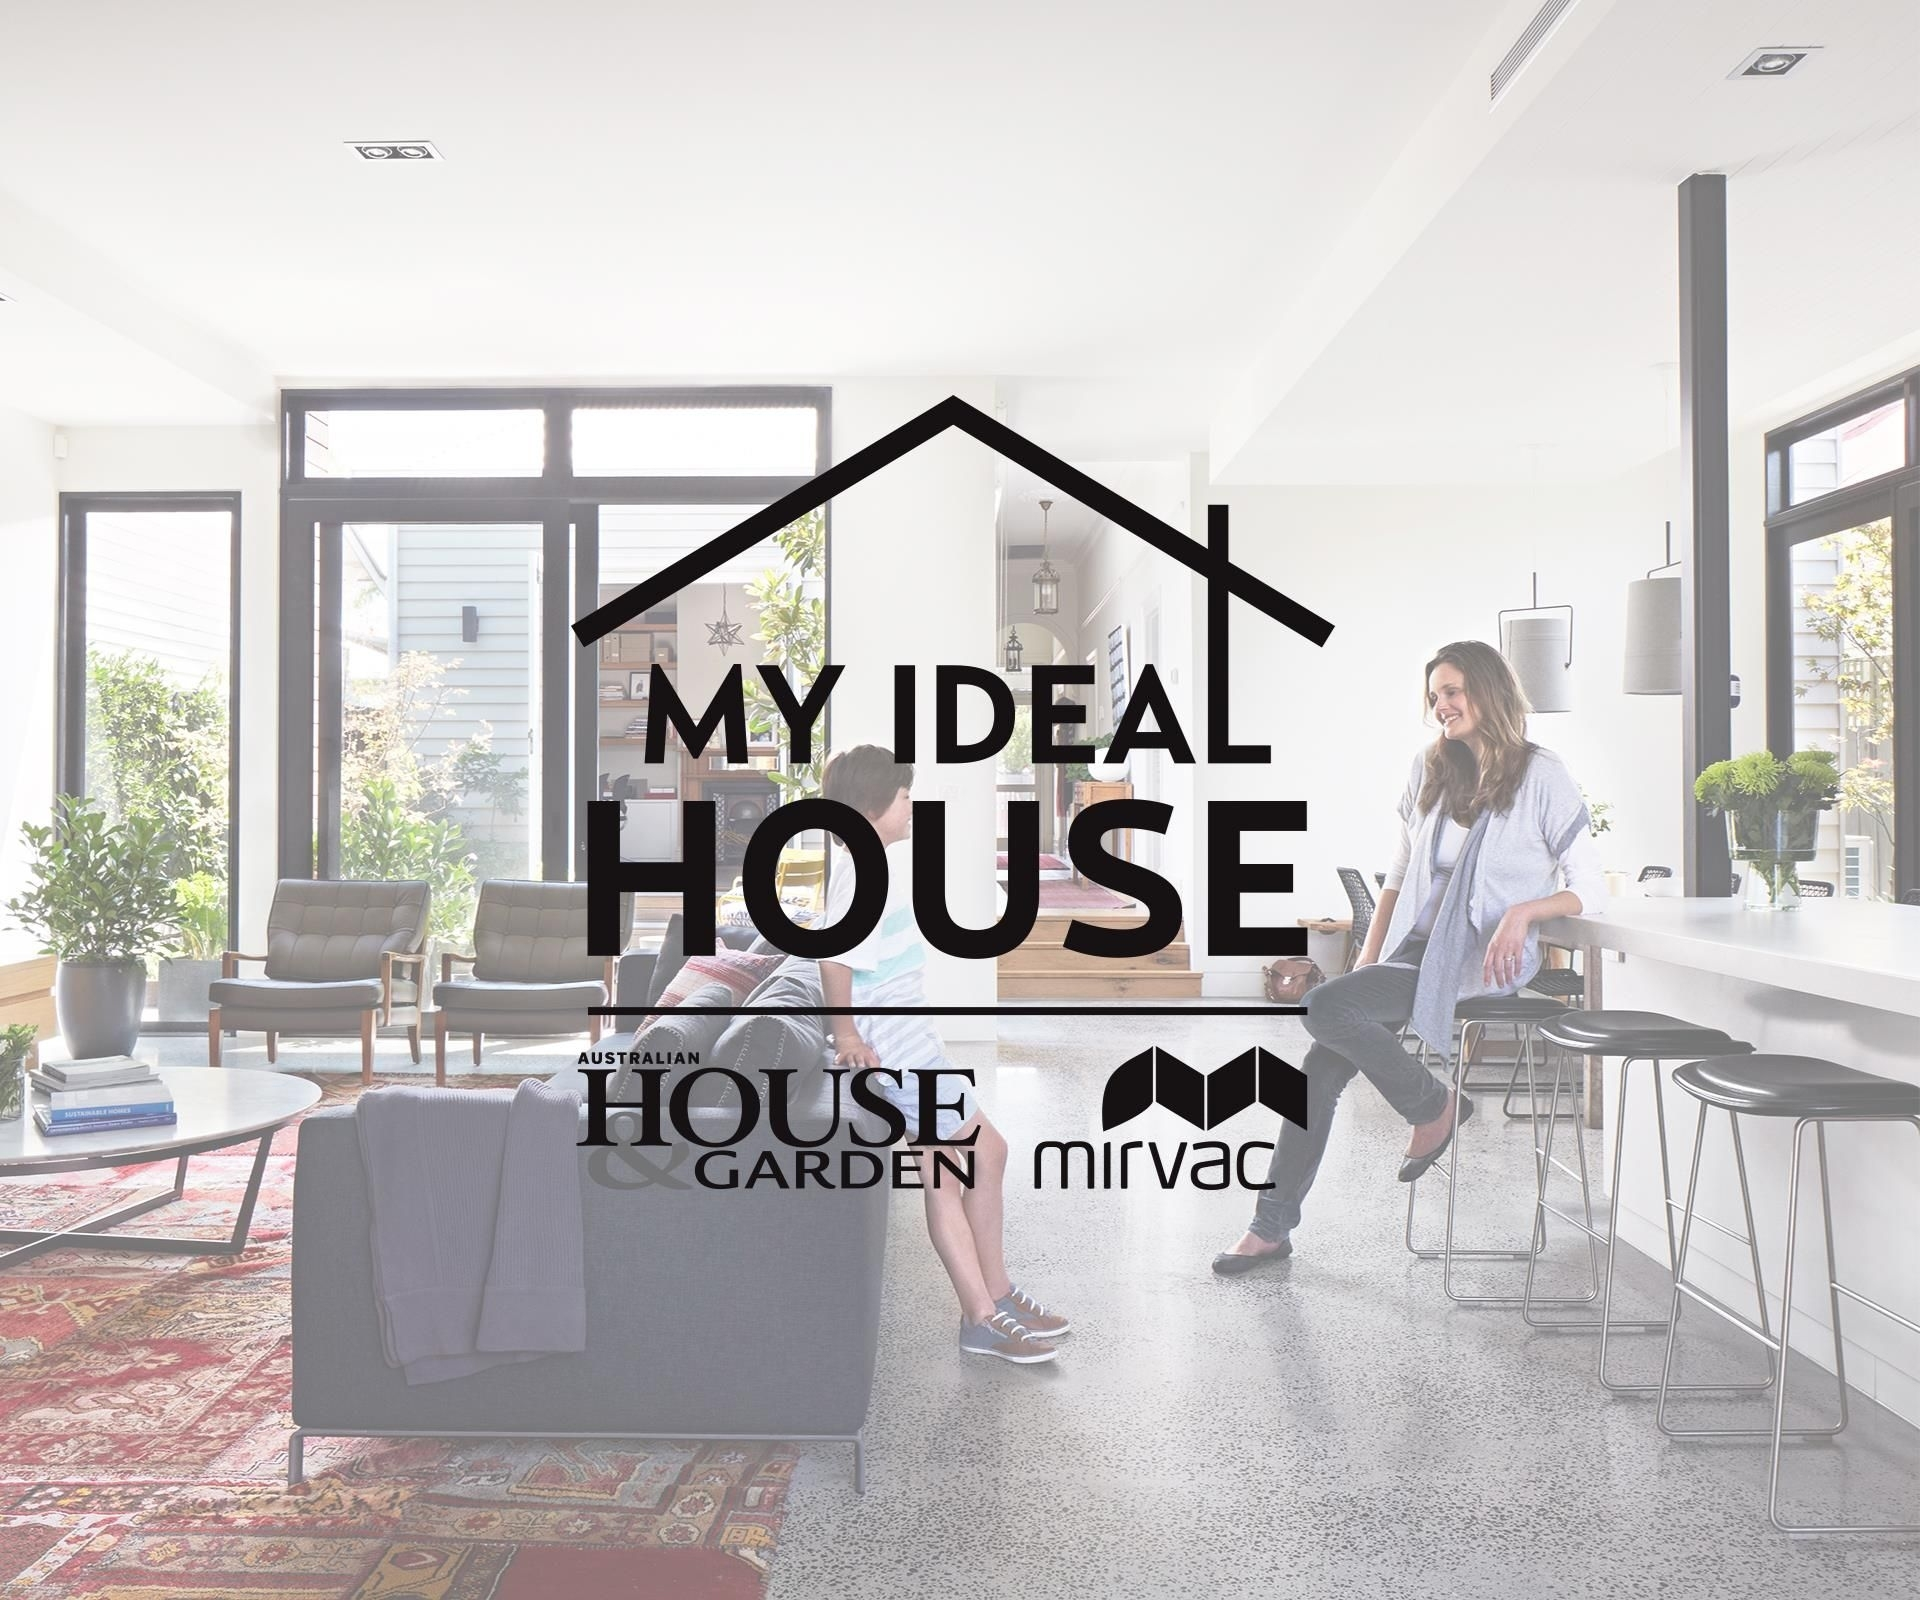 Competition Now Closed: Design Australia's Ideal House And Win for House And Garden Interior Design Competition